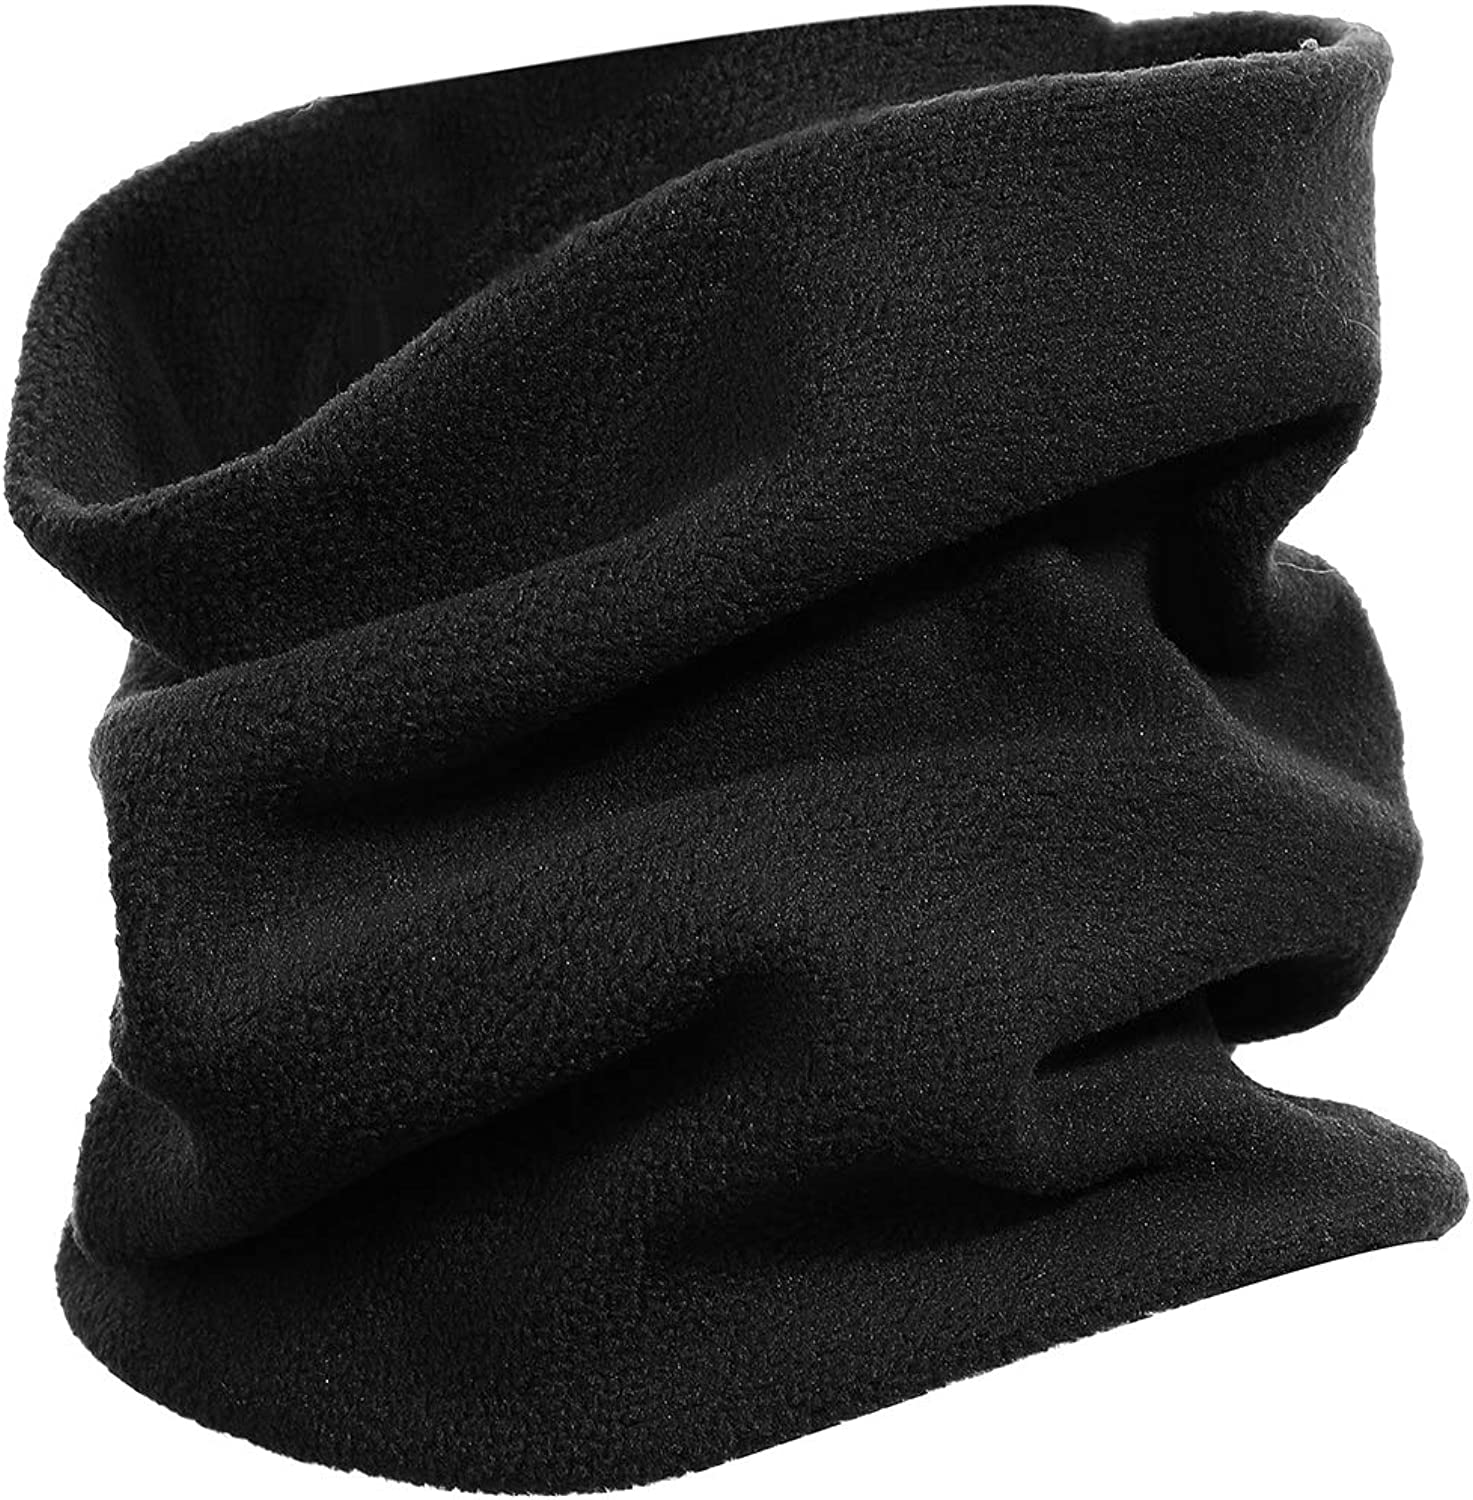 Warm Face Covering Gaiters For Kids Neck Gaiter Winter Balaclava Face Scarf Pure Deep Grey